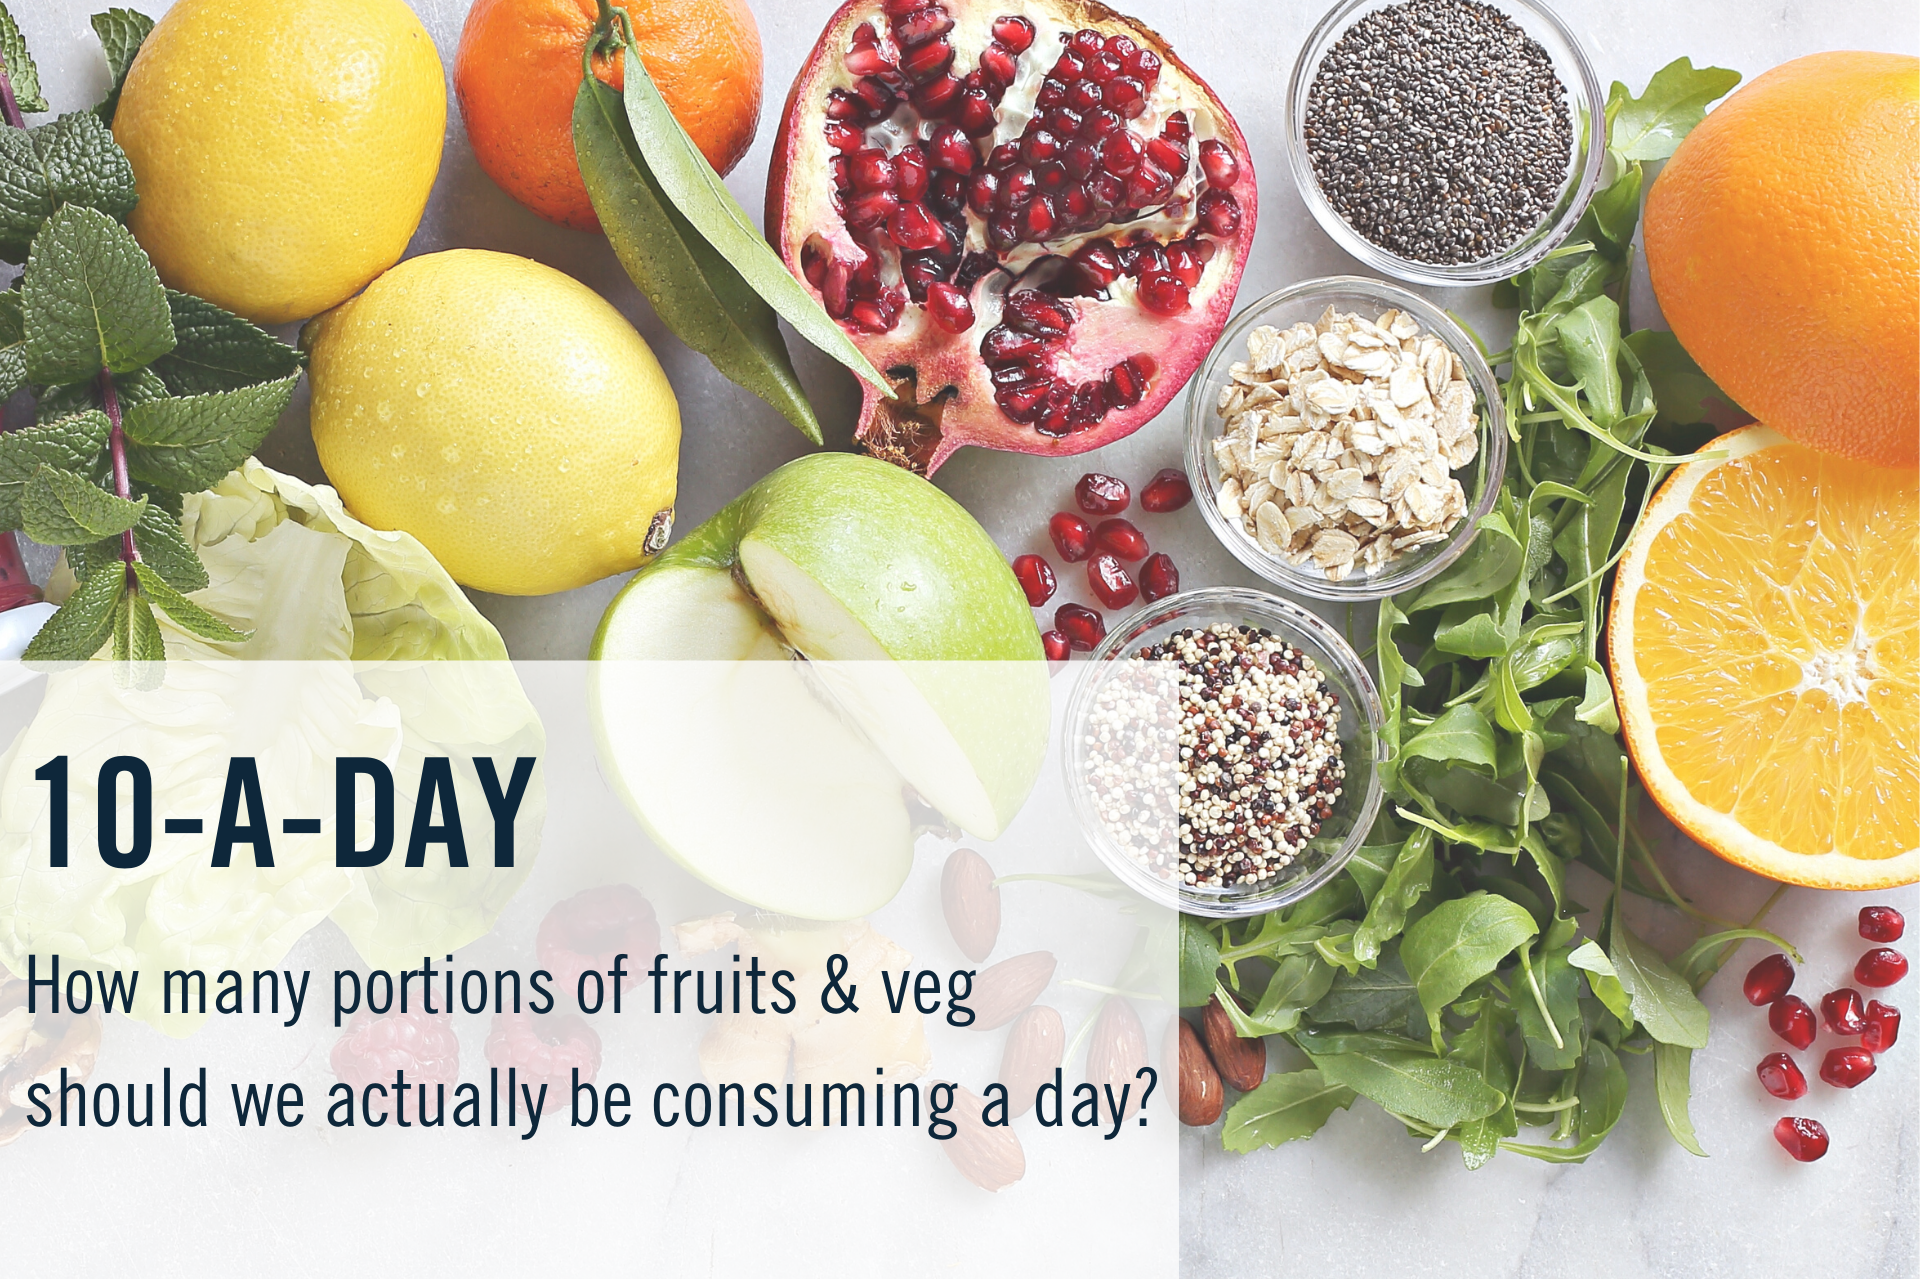 How many portions of fruit & veg should we be consuming a day?